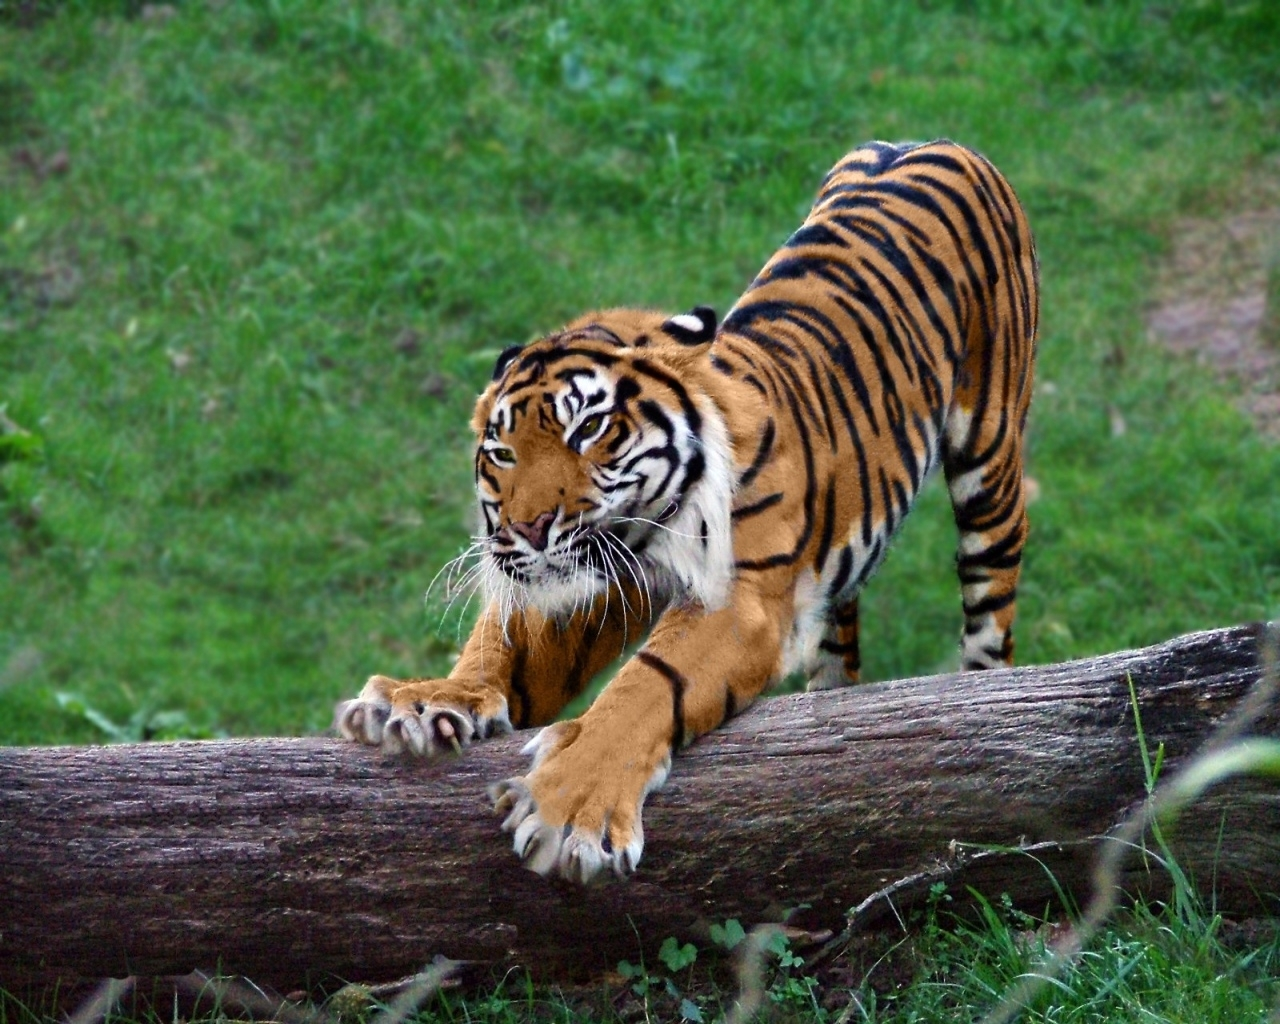 5795 download wallpaper Animals, Tigers screensavers and pictures for free